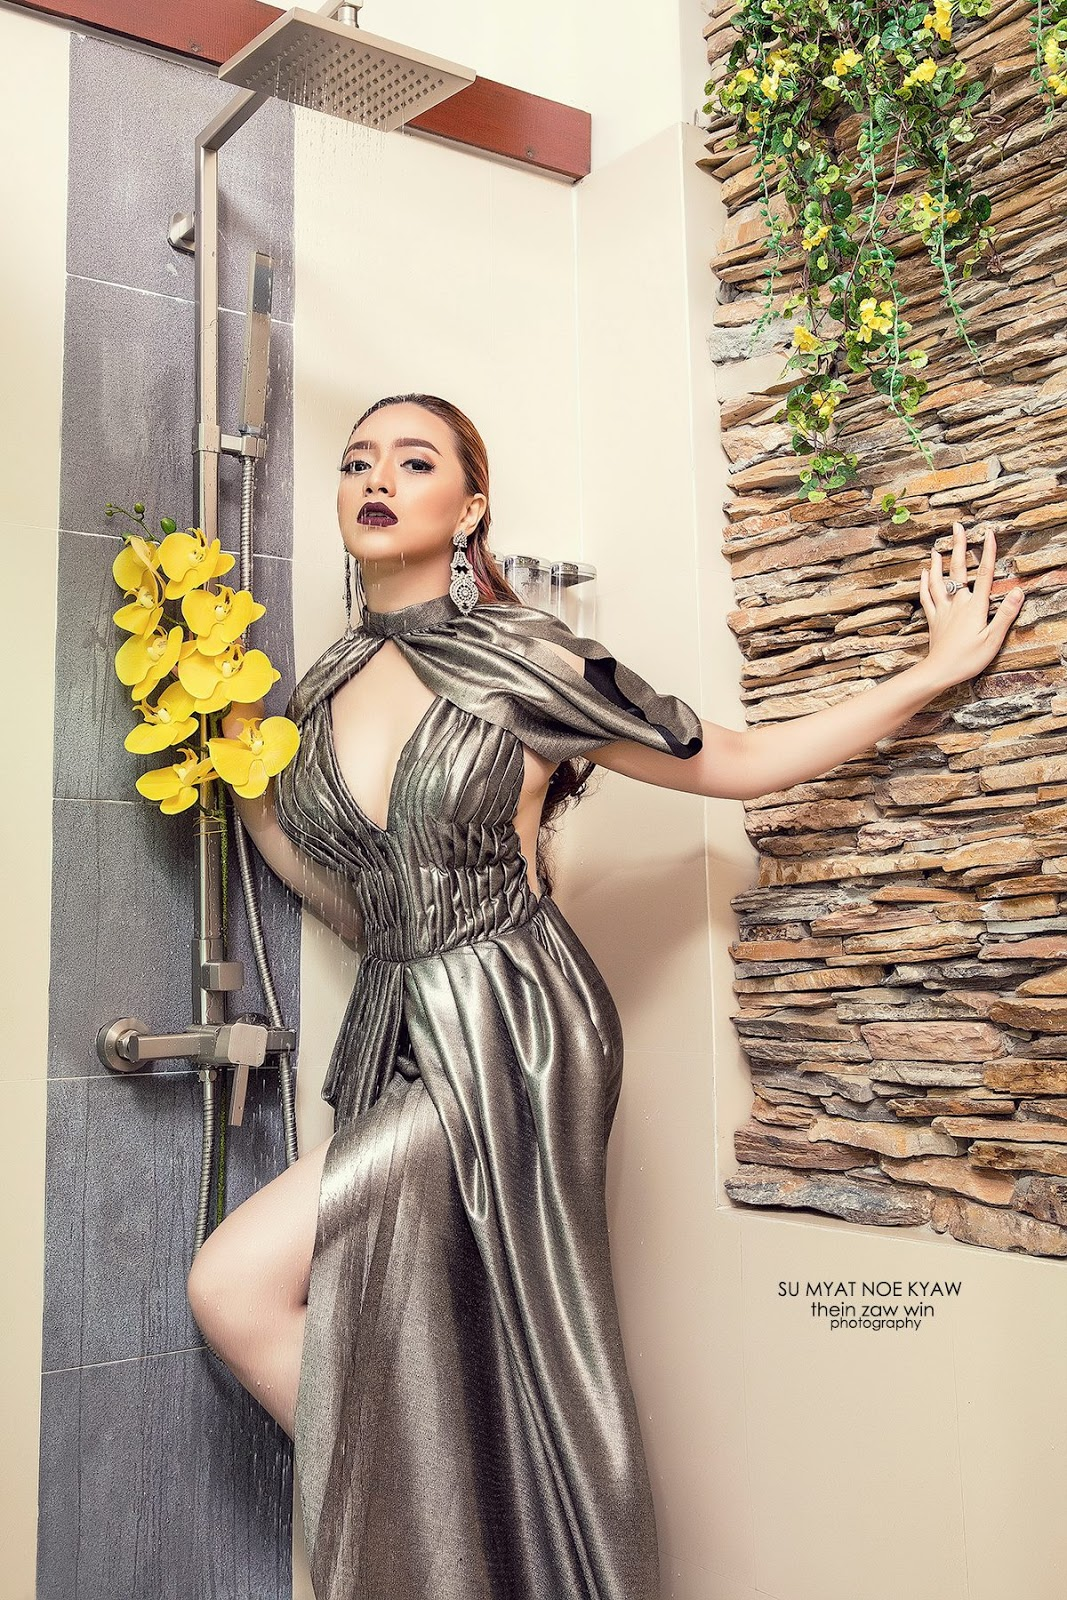 Su Myat Noe Kyaw In Bath Tab Fashion Photoshoot